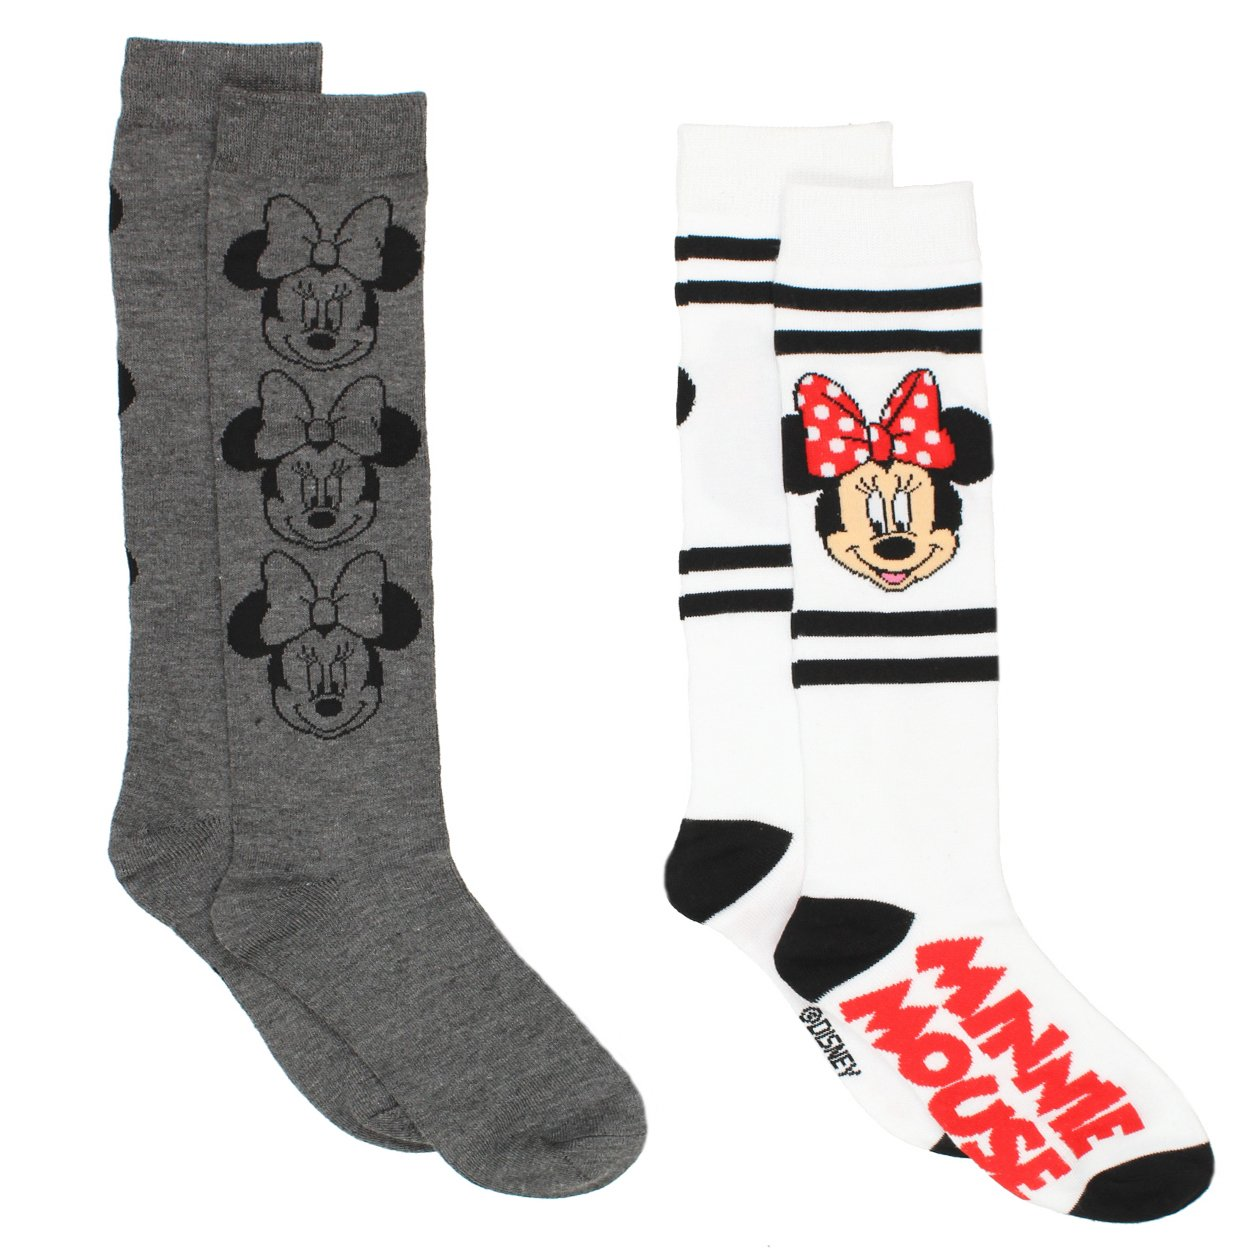 Minnie Mouse Womens 2 pack Socks (9-11 (Shoe: 4-10), Knee High Grey/White)